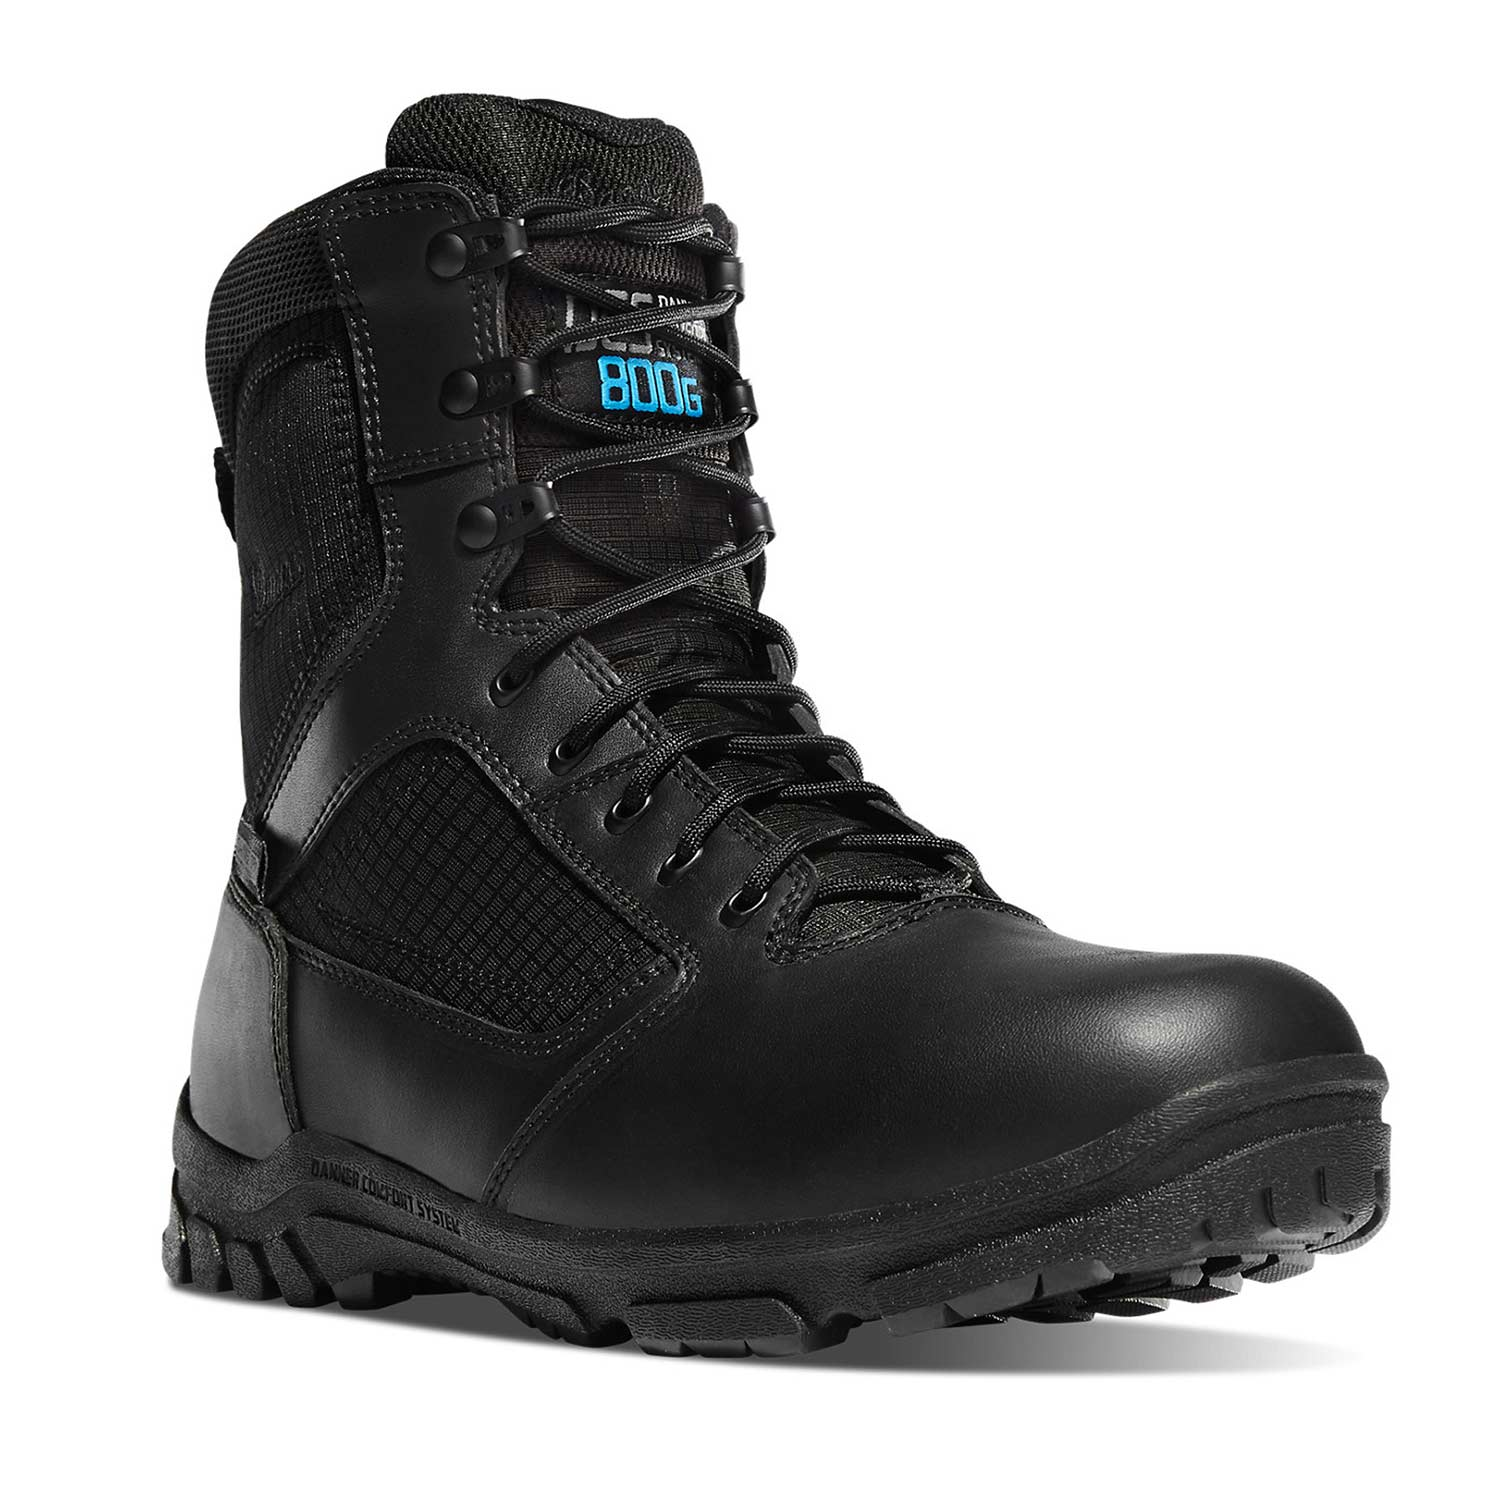 "Danner Lookout 8"" Insulated 800G"